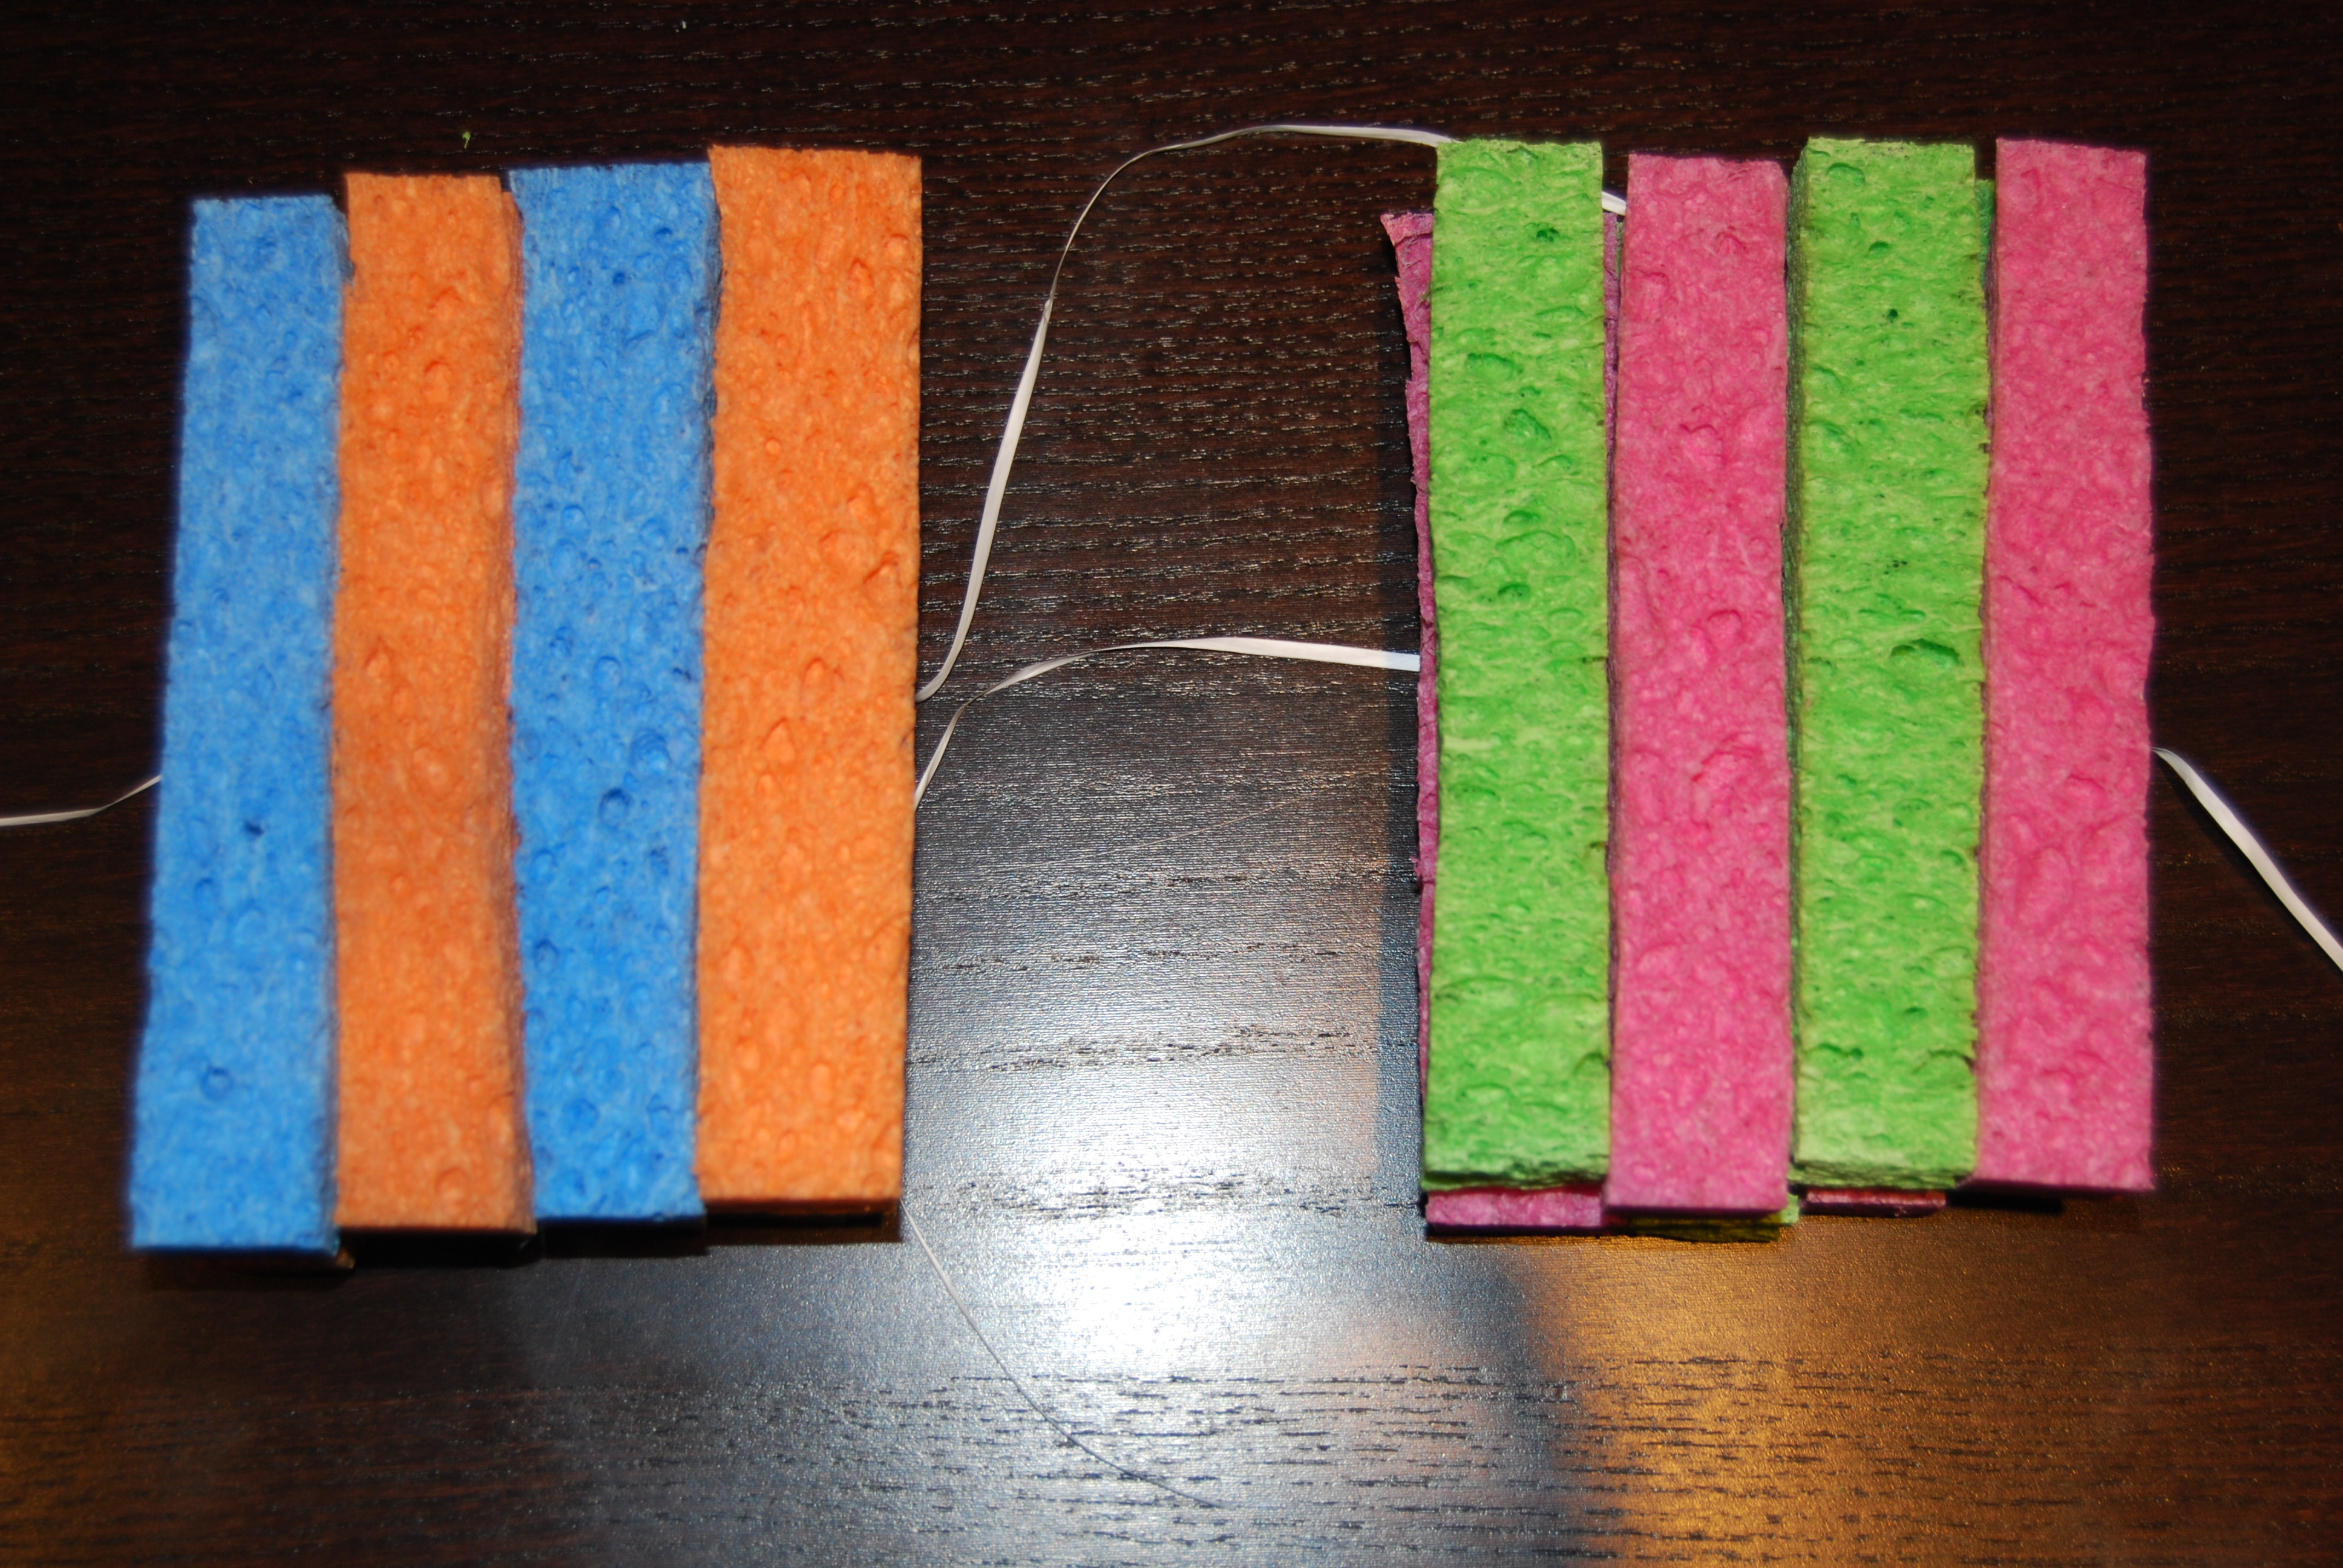 Stacks of eight sponge pieces